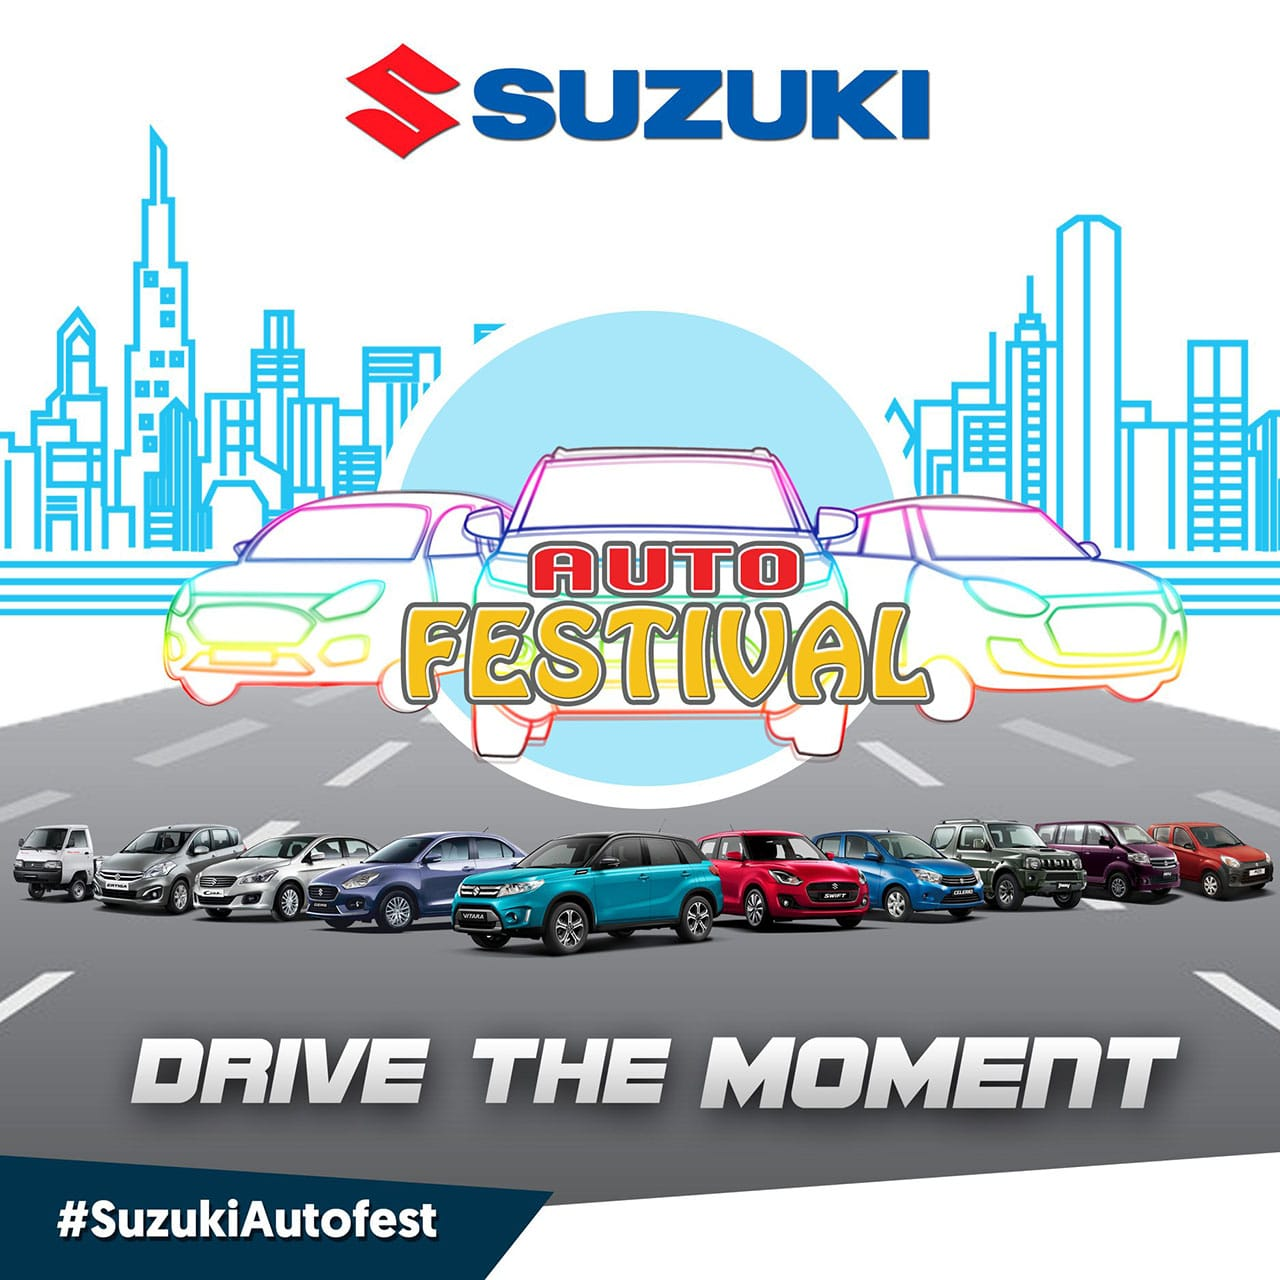 Suzuki AutoFest 2018 toasts to better riding experience, reaches more cities